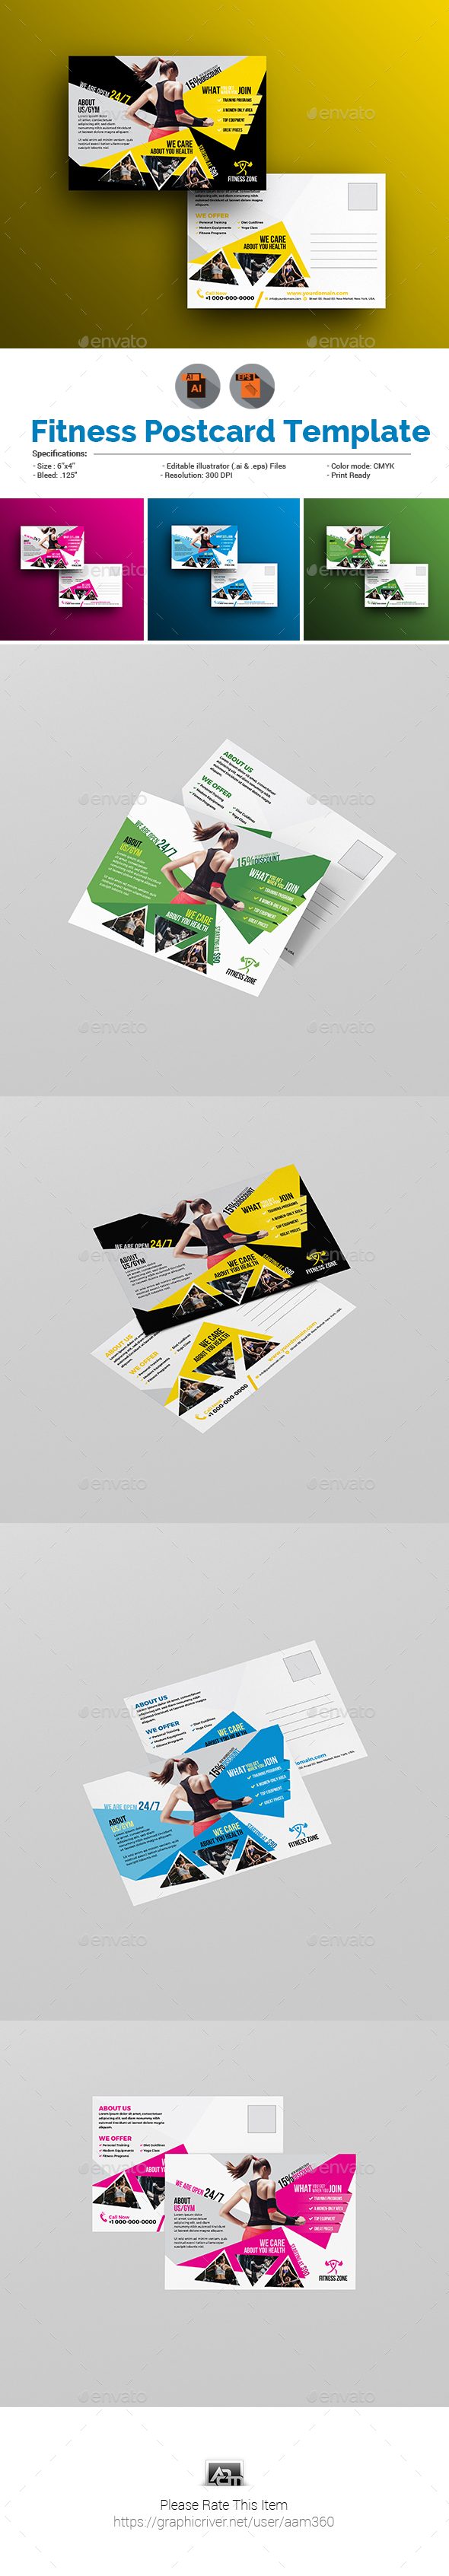 Fitness Postcard Template - Cards & Invites Print Templates